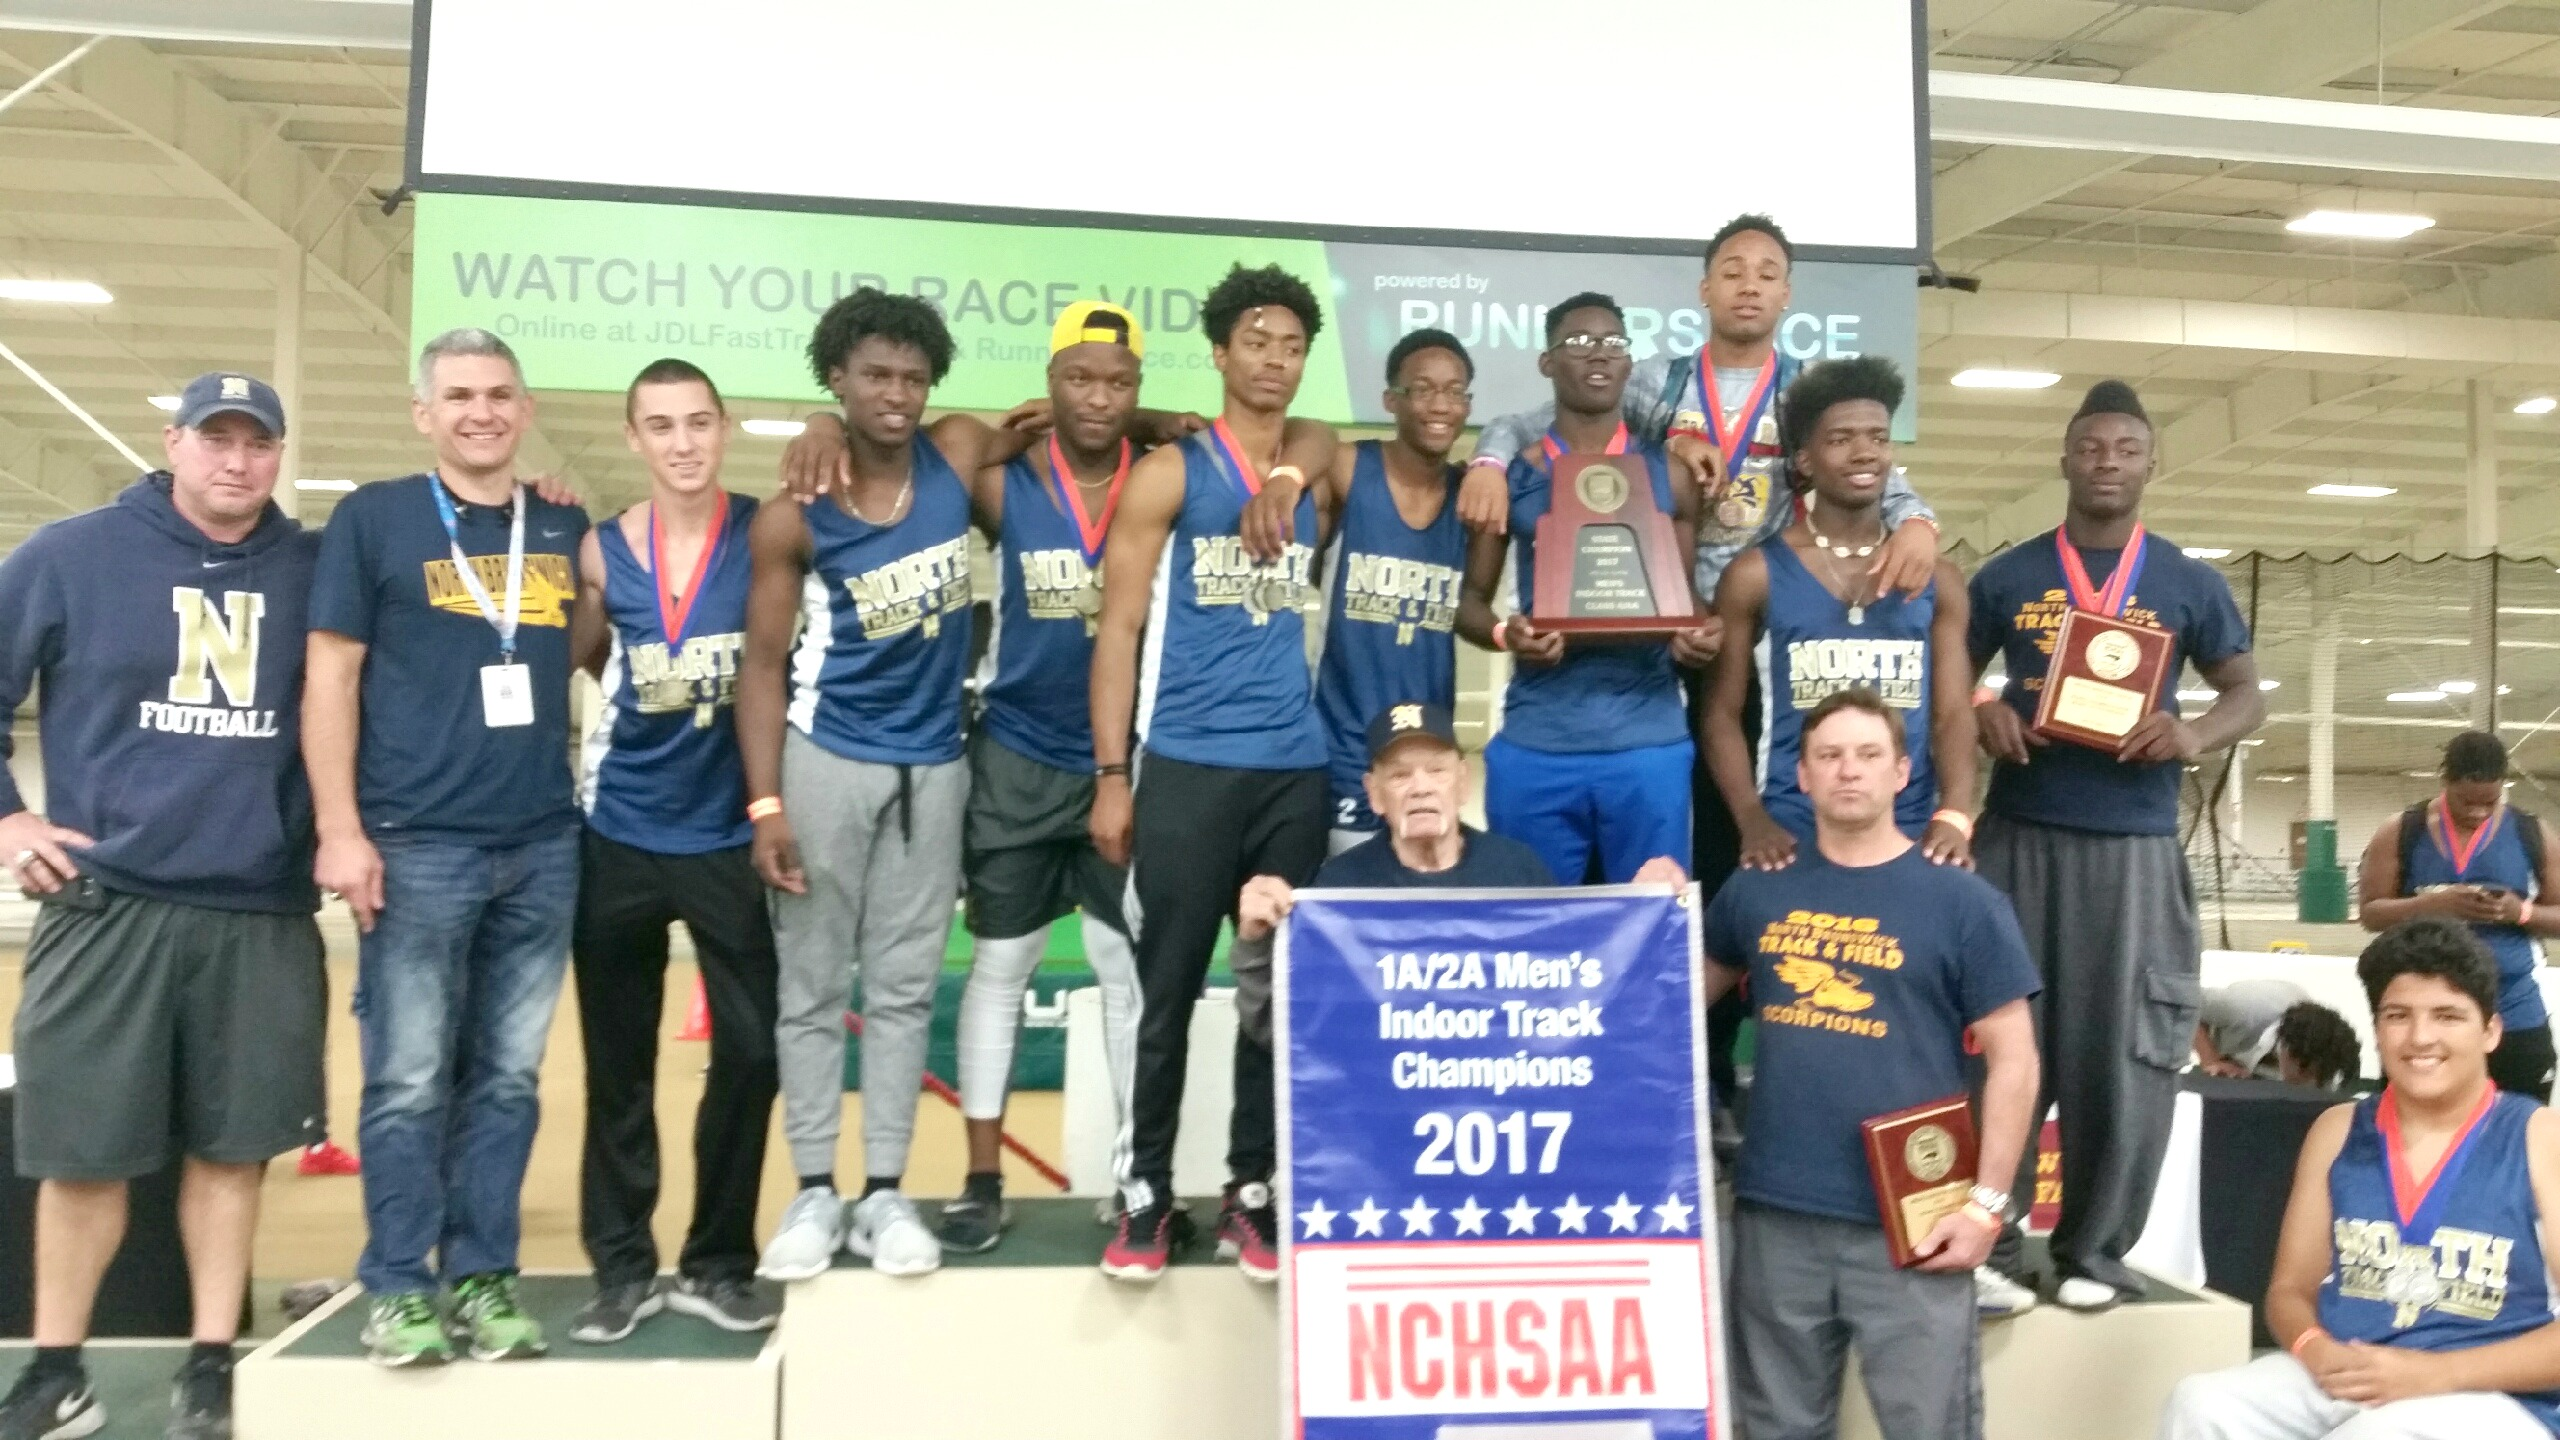 North Brunswick High School Track Team